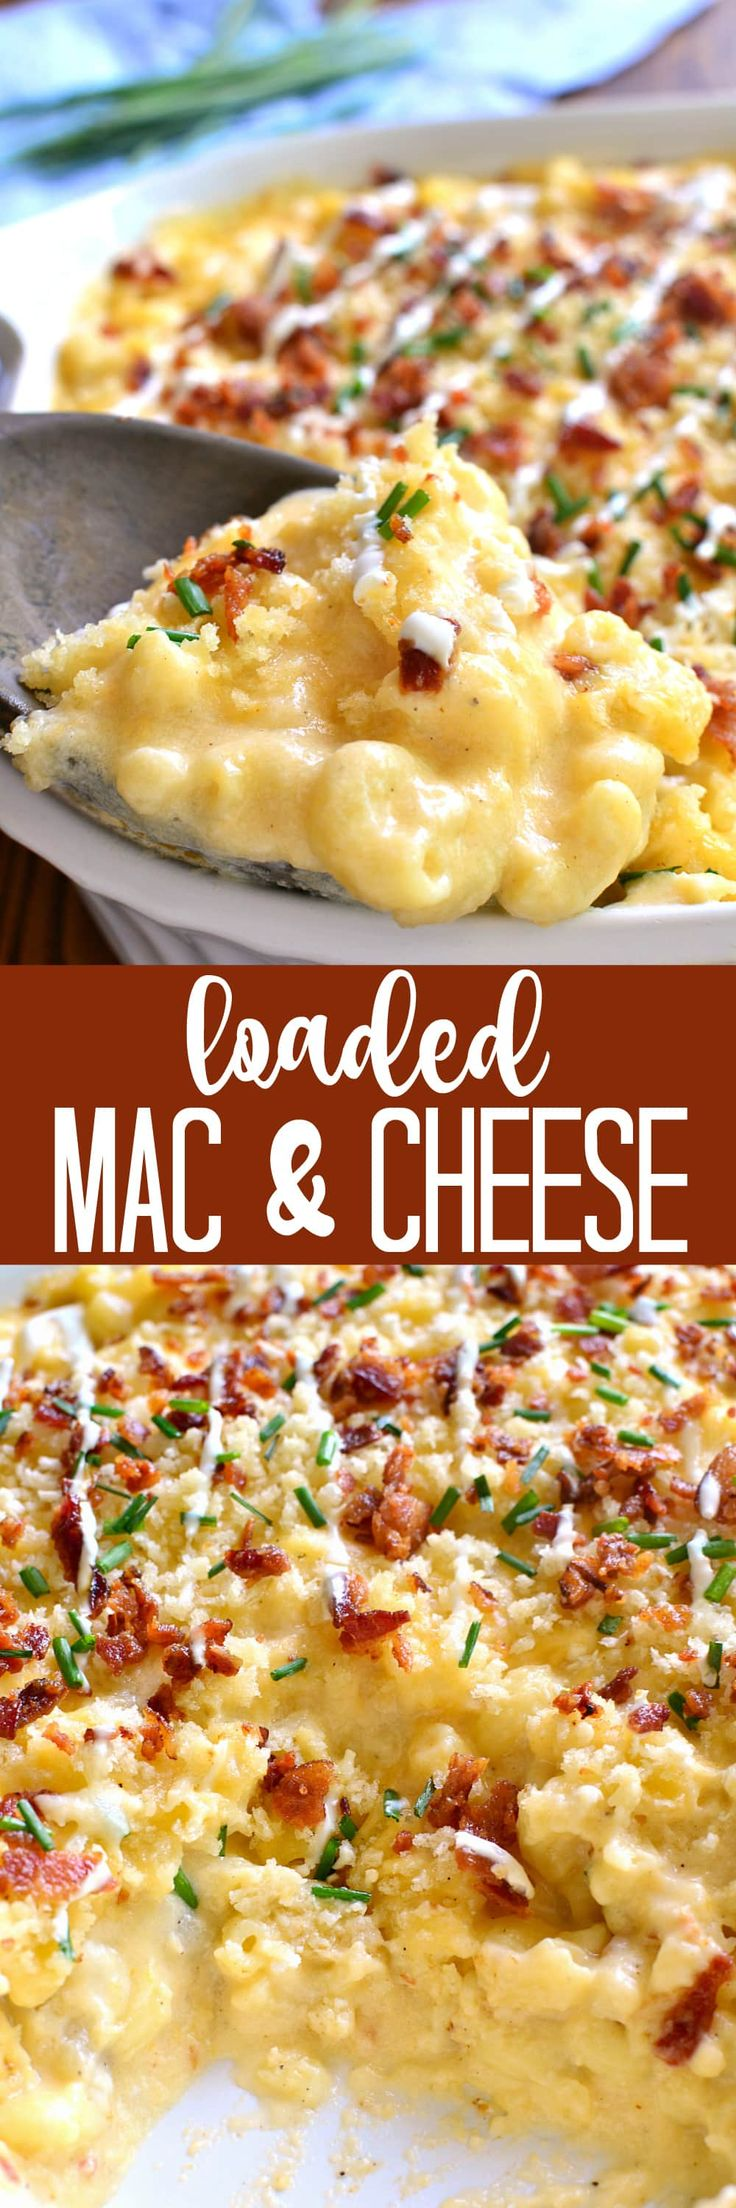 Deliciously creamy Baked Mac & Cheese, loaded with sour cream, bacon, and chives and topped with buttery bread crumbs. The BEST mac & cheese ever....sure to become a family favorite!